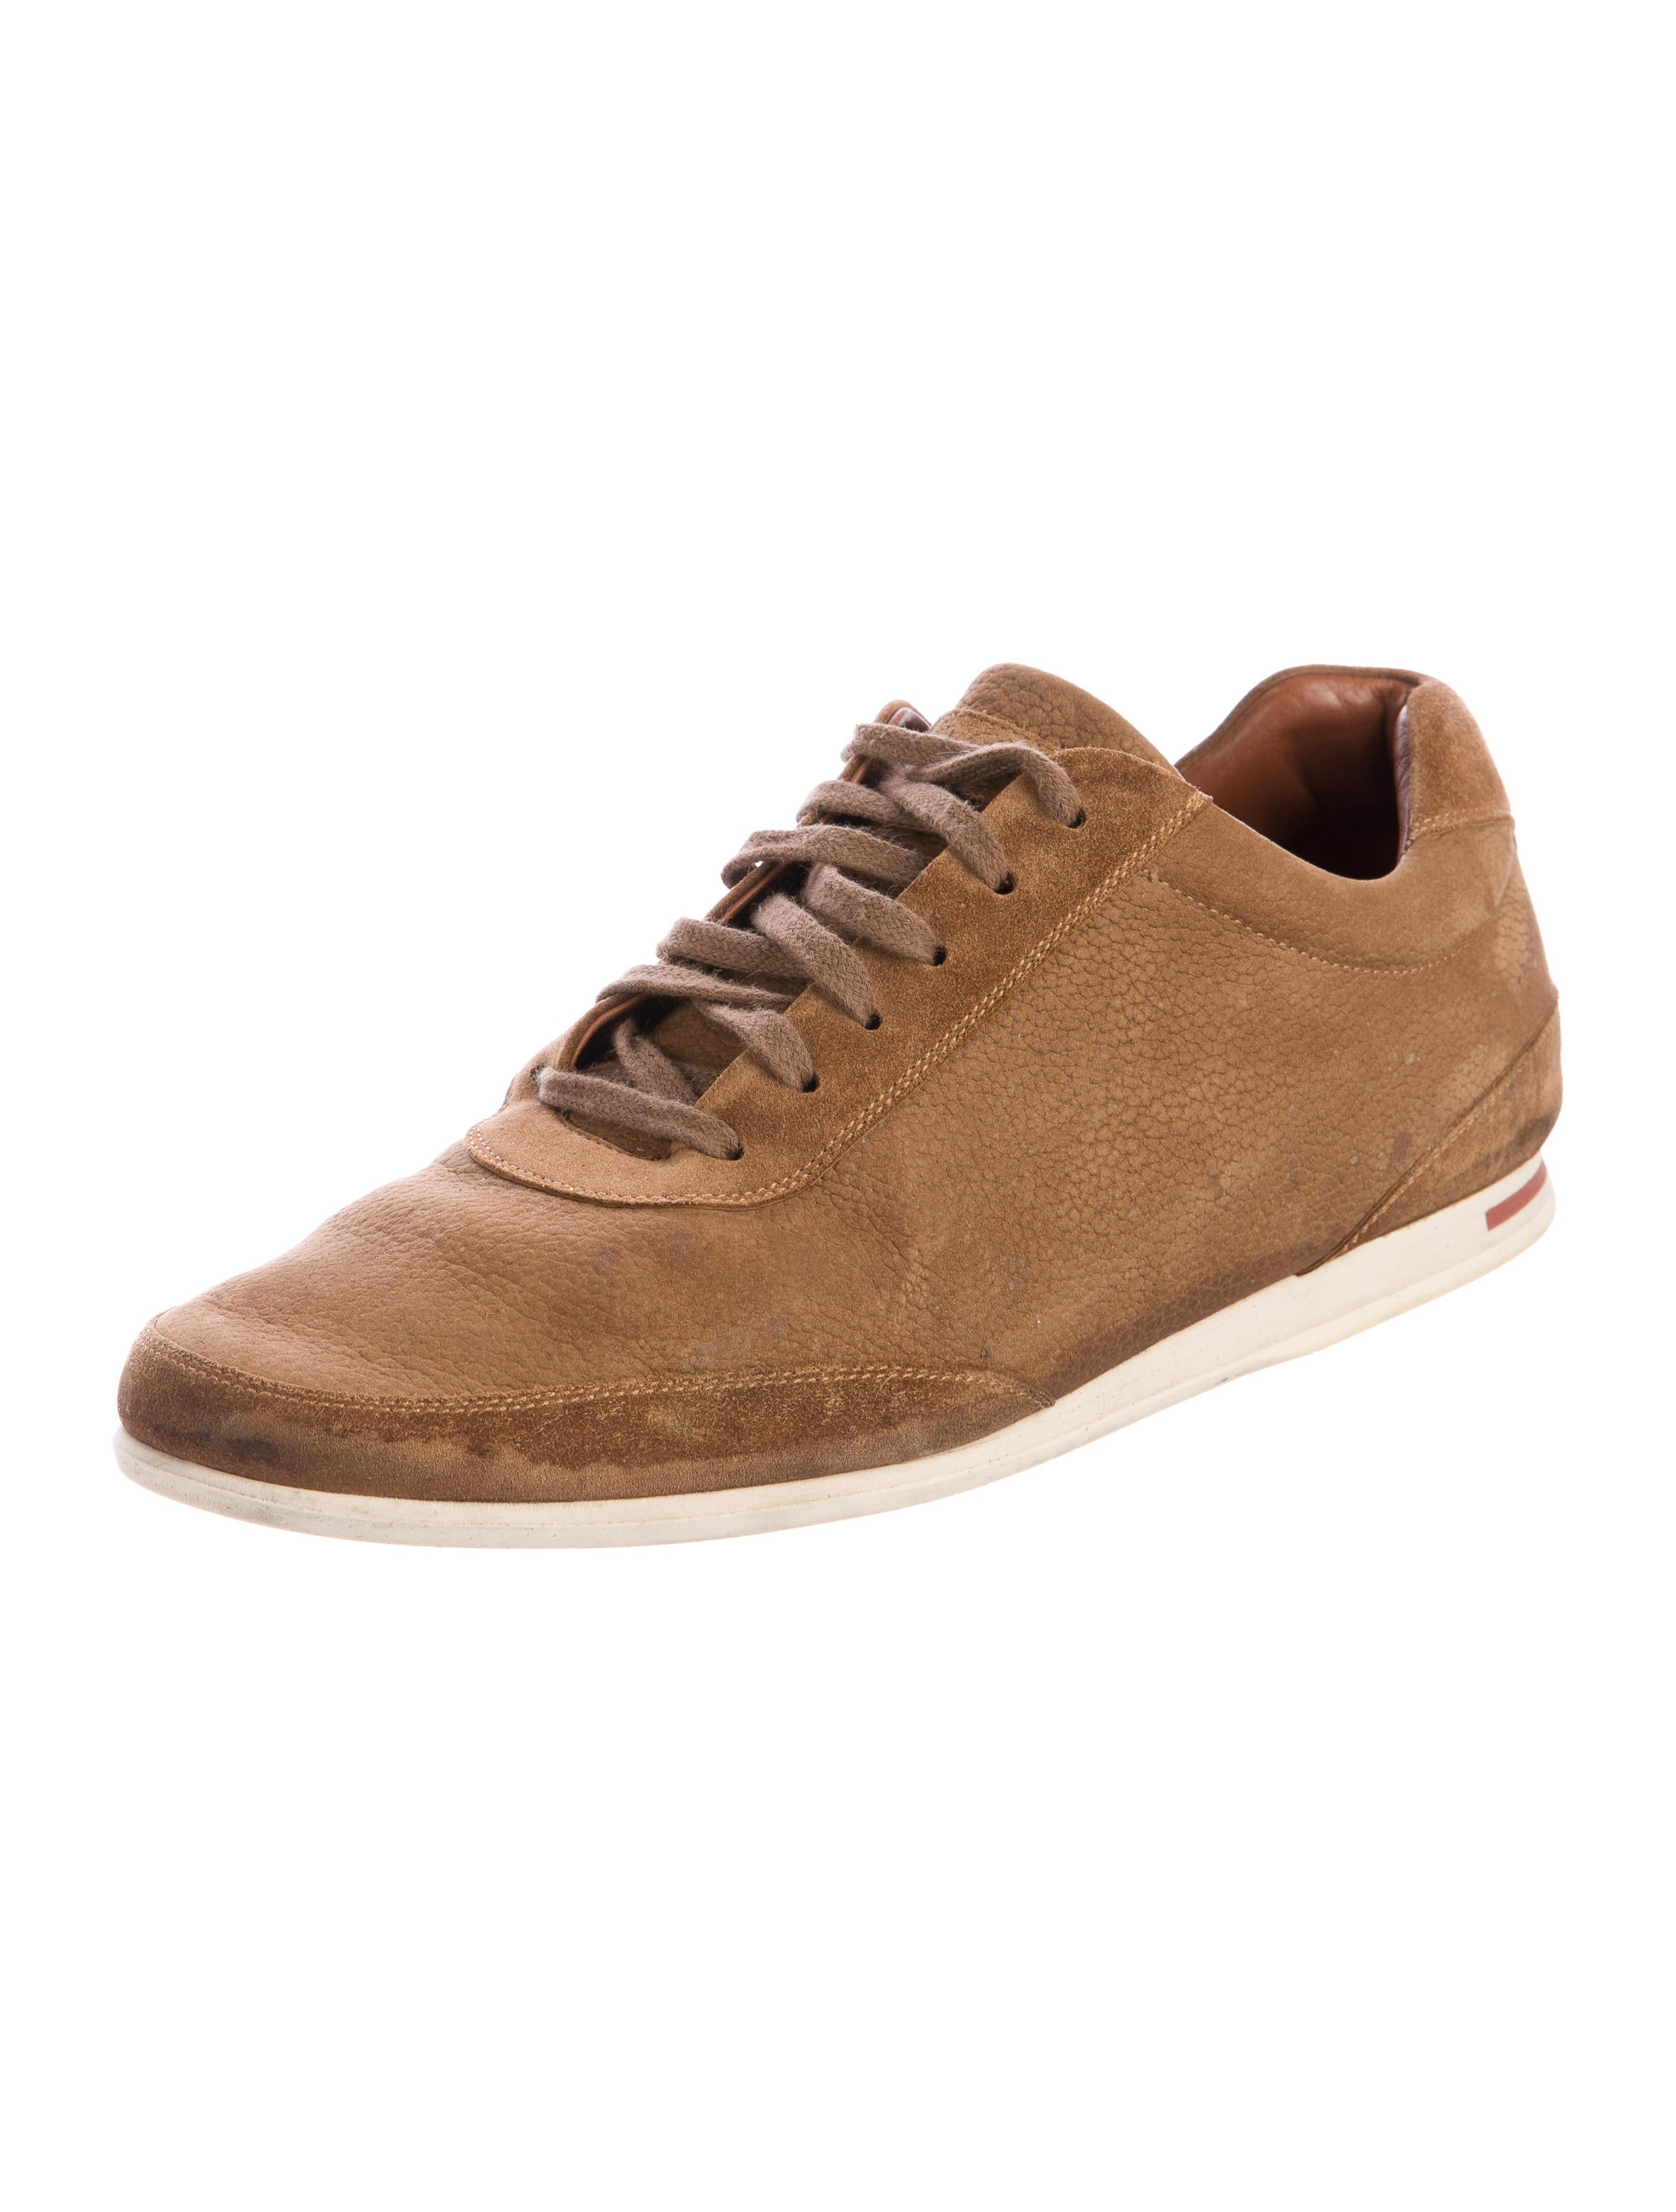 loro piana suede low top sneakers shoes lor36458 the